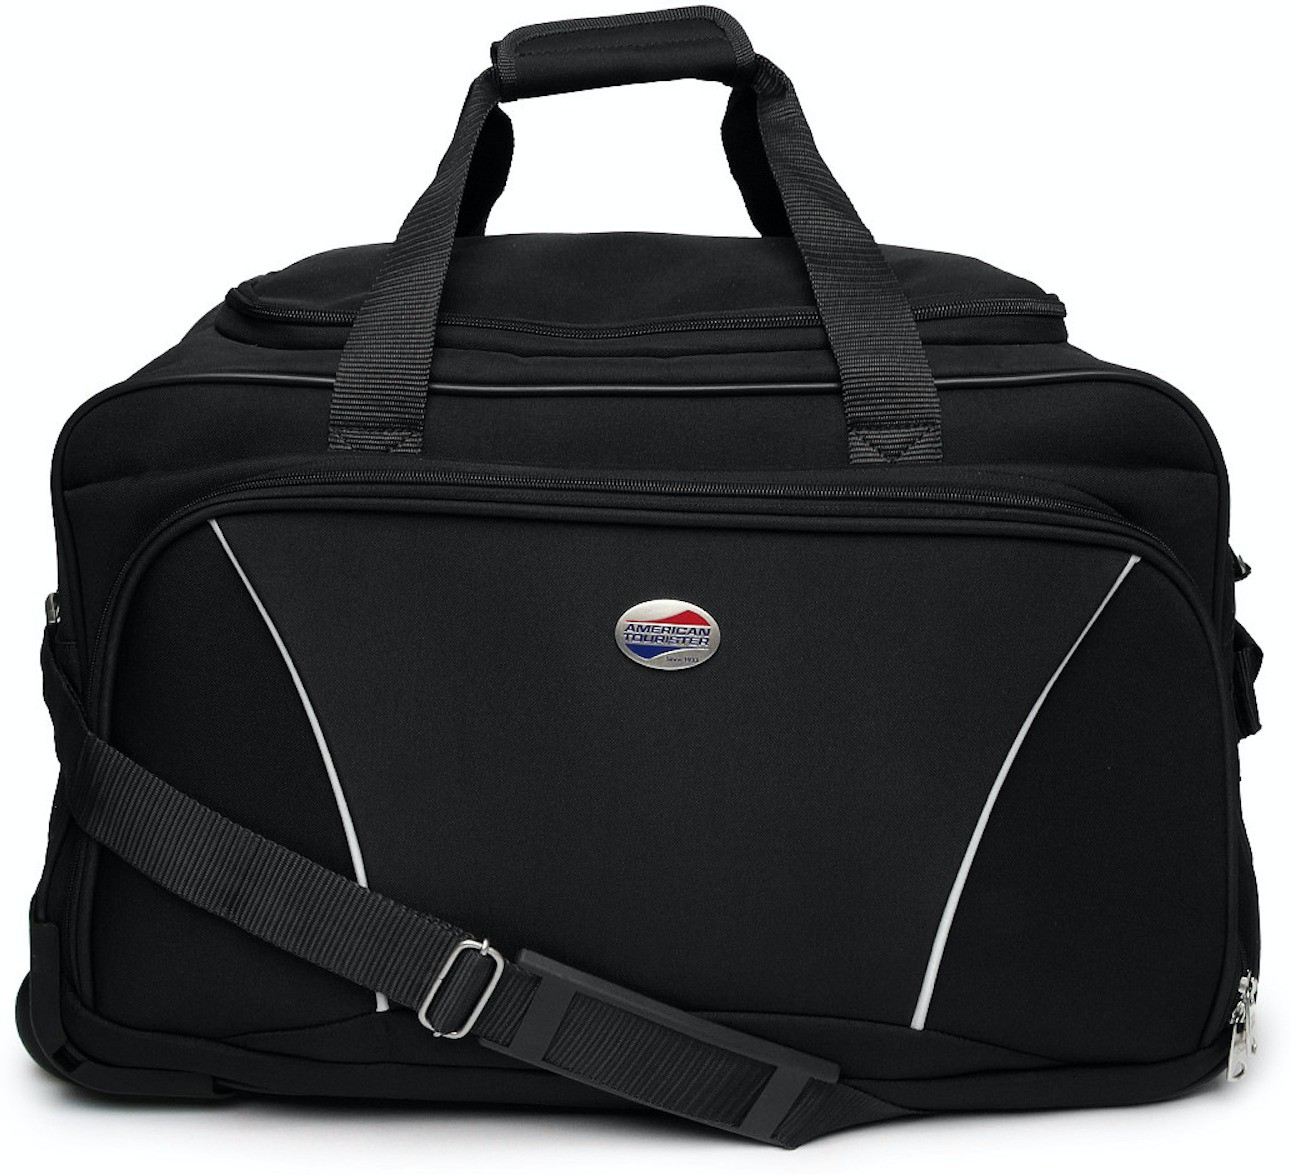 American Tourister Vision (Expandable) Duffel Strolley Bag(Black)